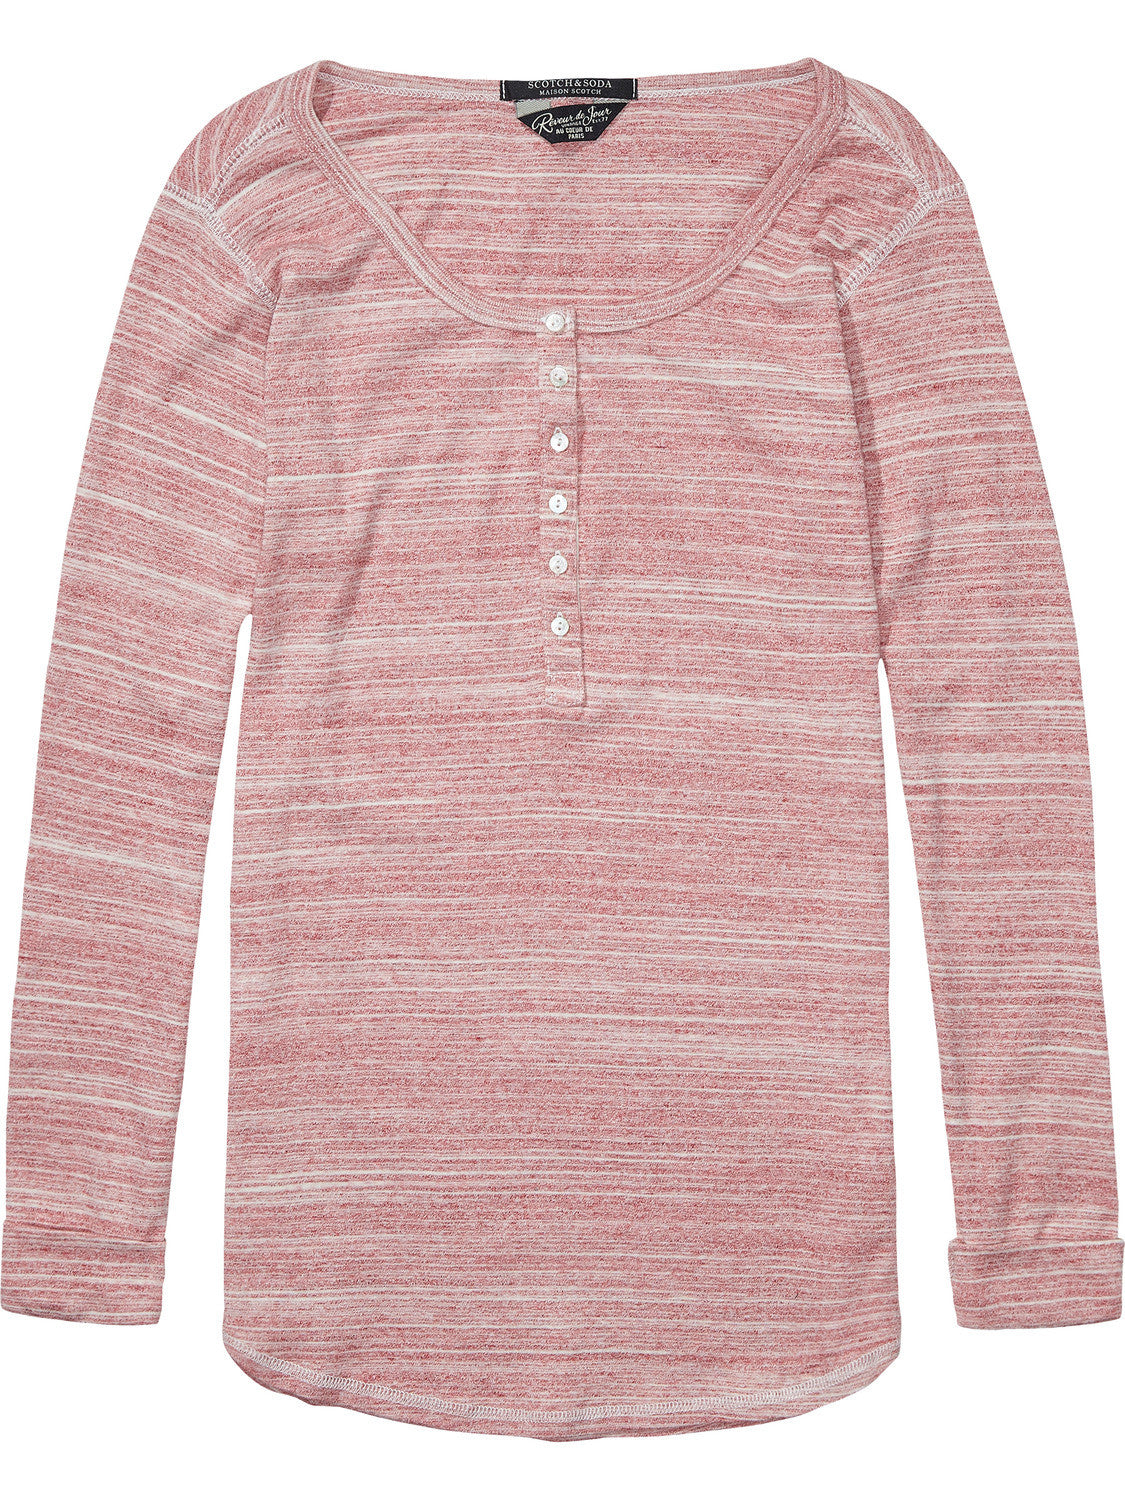 Maison Scotch Granddad Top